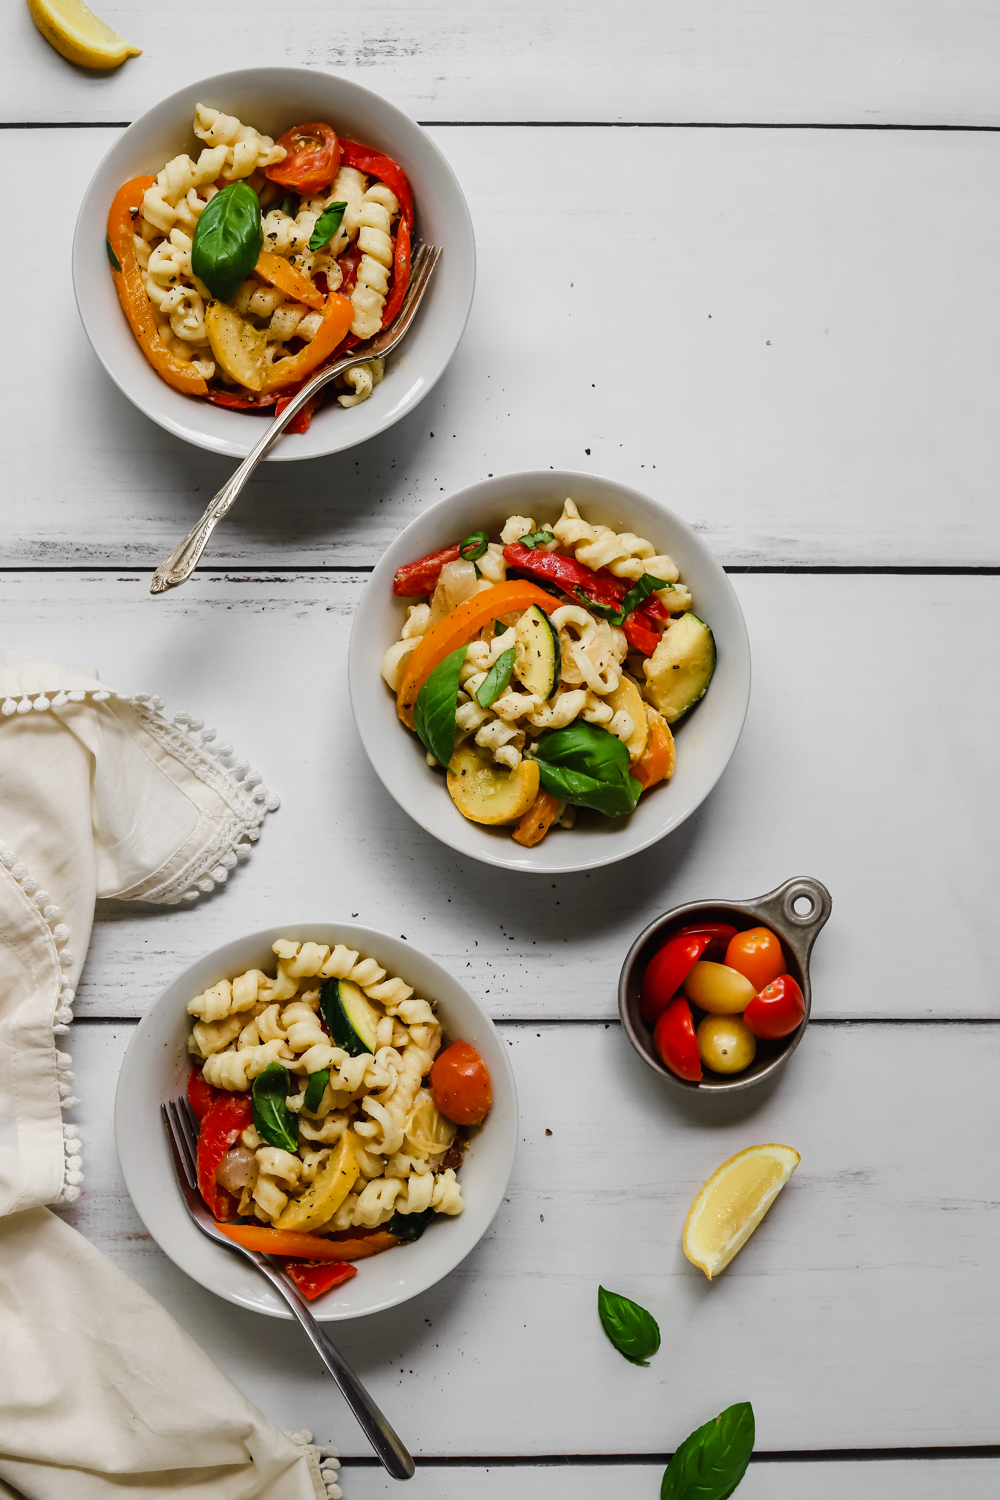 Three small white bowls of creamy pasta with veggies on a white wooden table.